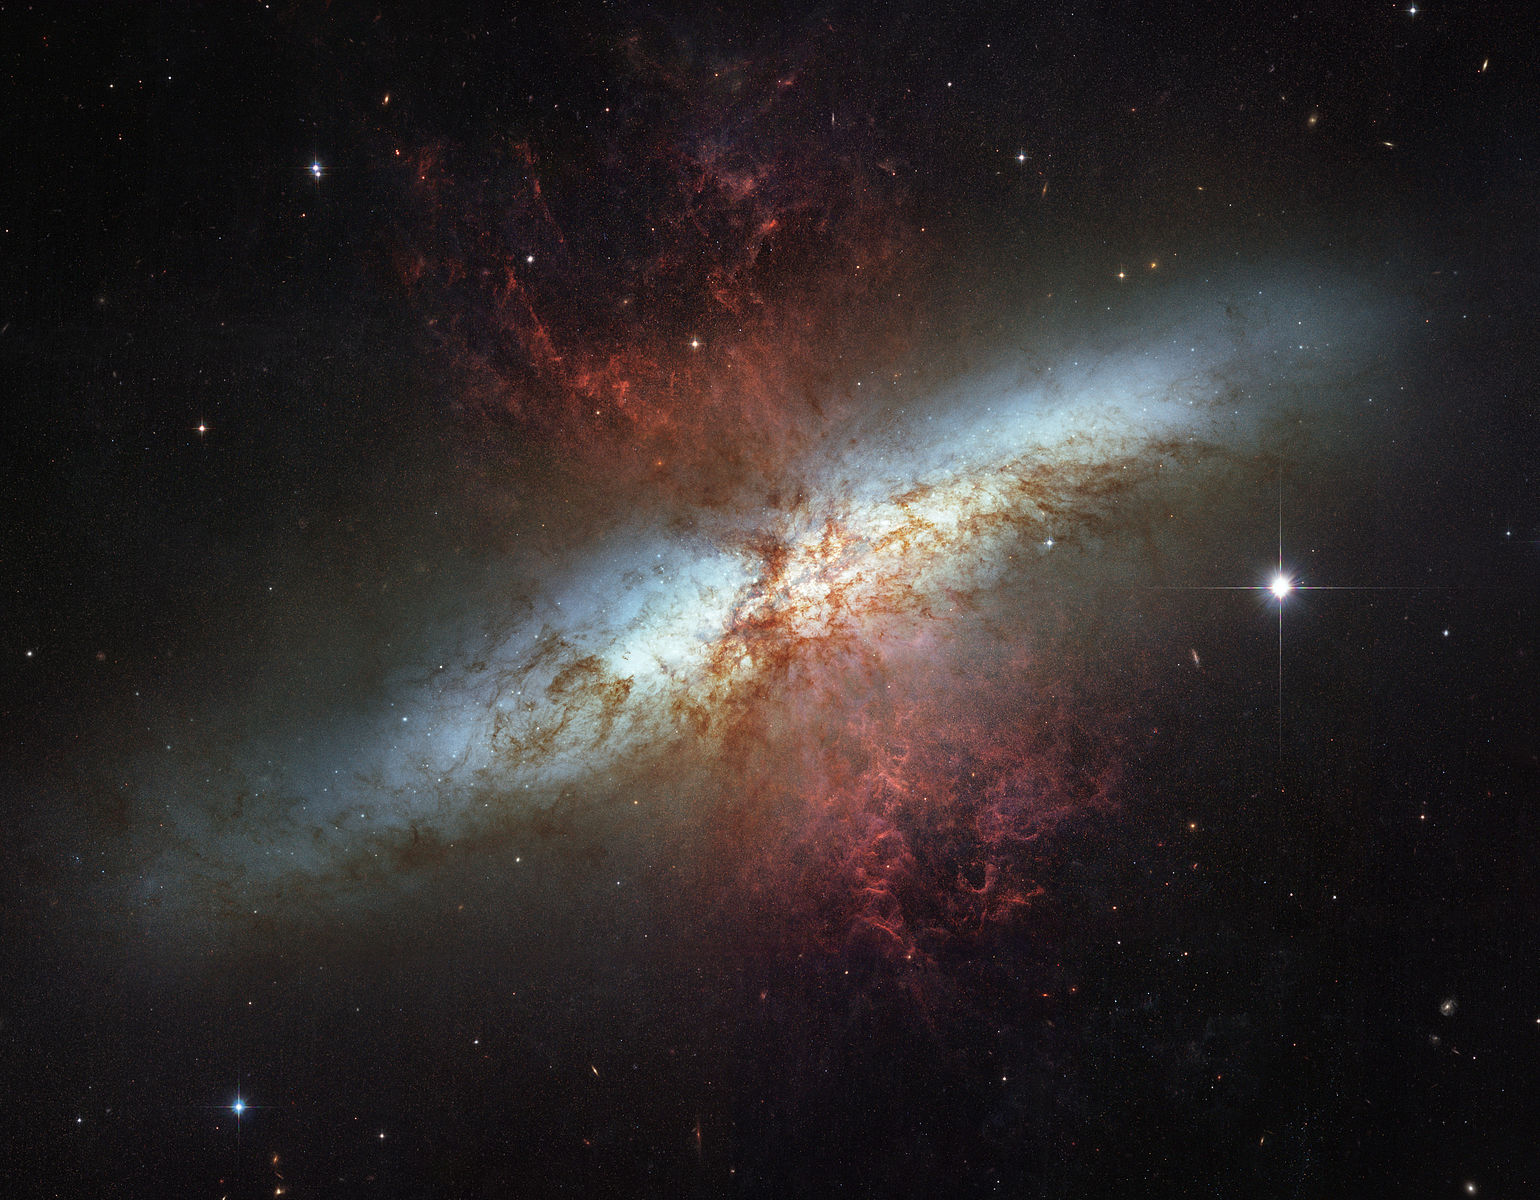 M82 is a prototypical starburst galaxy. Dust and gas is launched out of the central 500 parsecs (1500 light years) of the galaxy by the explosions of numerous core-collapse supernovae. From Wikipedia. M82 was also the host of the Type Ia supernova SN2014J, one of my favorite supernovae to argue over (see my previous blog post, a retrospective of IAUS322)